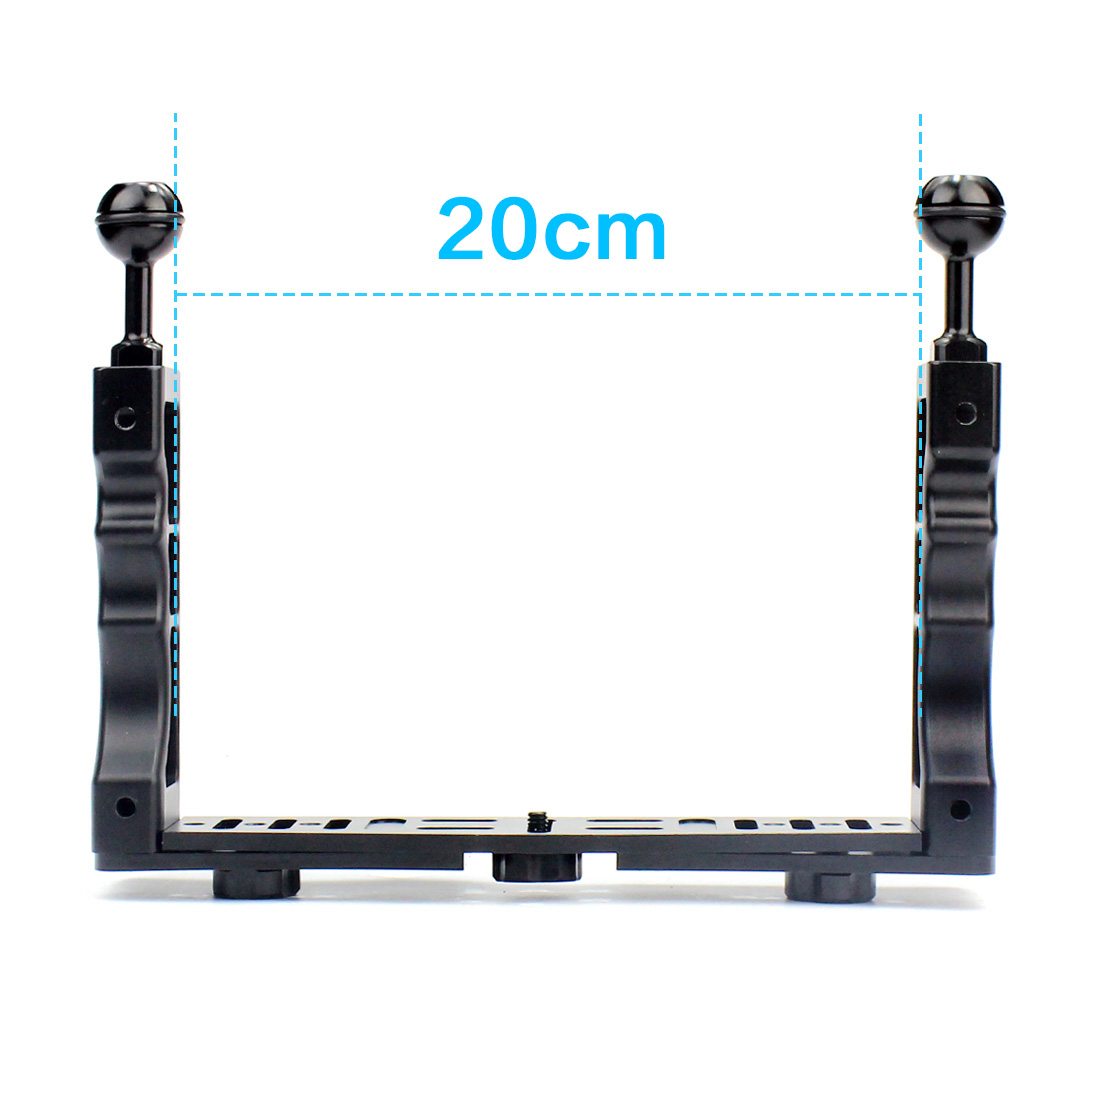 CNC Aluminum Alloy Waterproof Shell Tray Housing Arm/ Tripod Mount Adapter For Gopro Action Camera Holder Double Grip Dive Parts